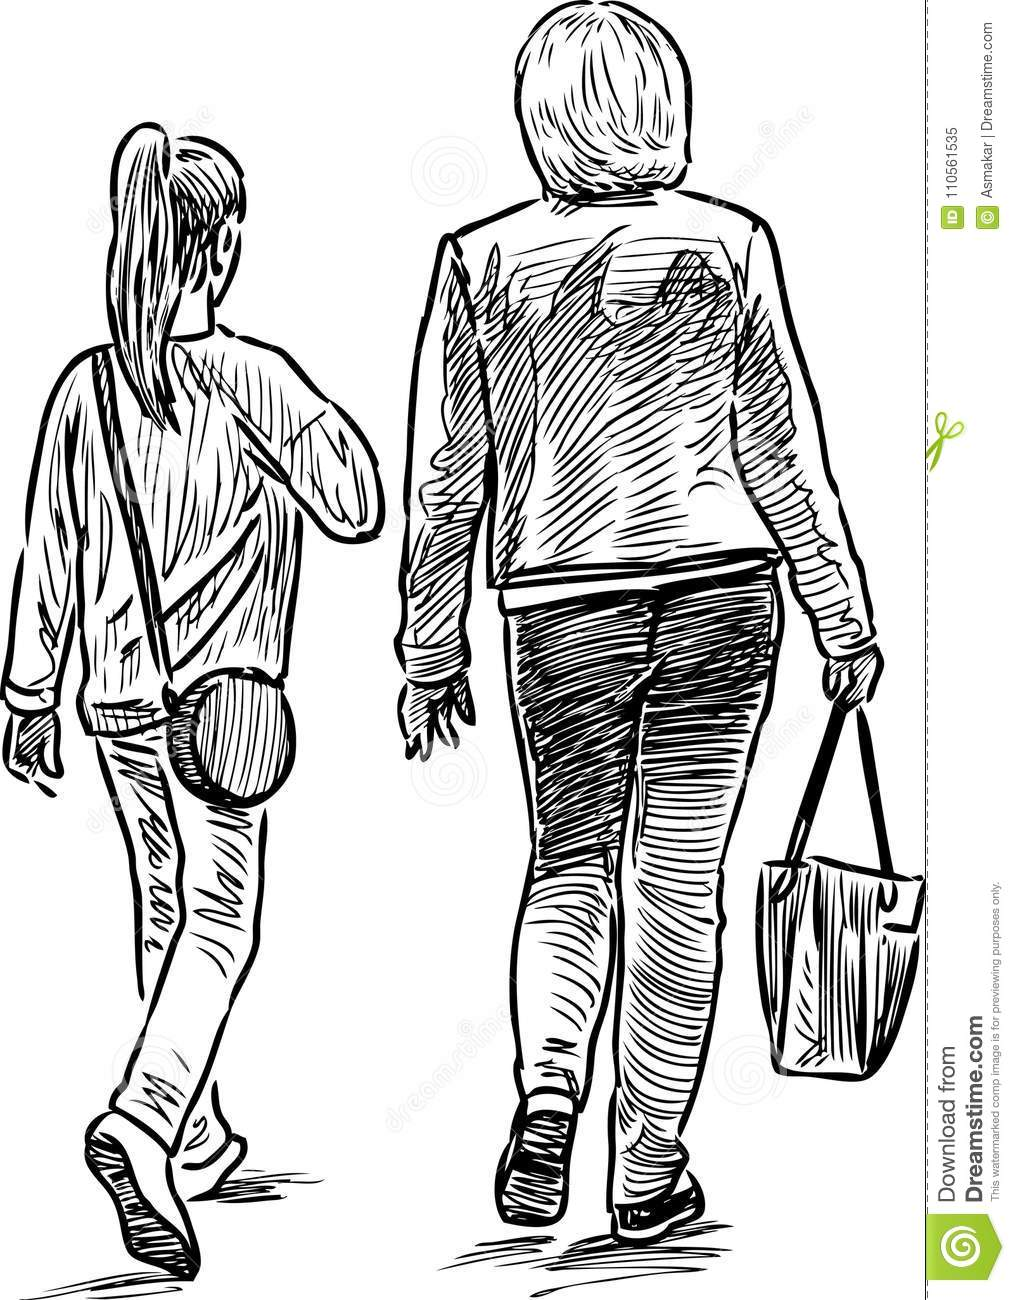 Sketch Of A Mother With Her Daughter Going On A Walk Stock Vector